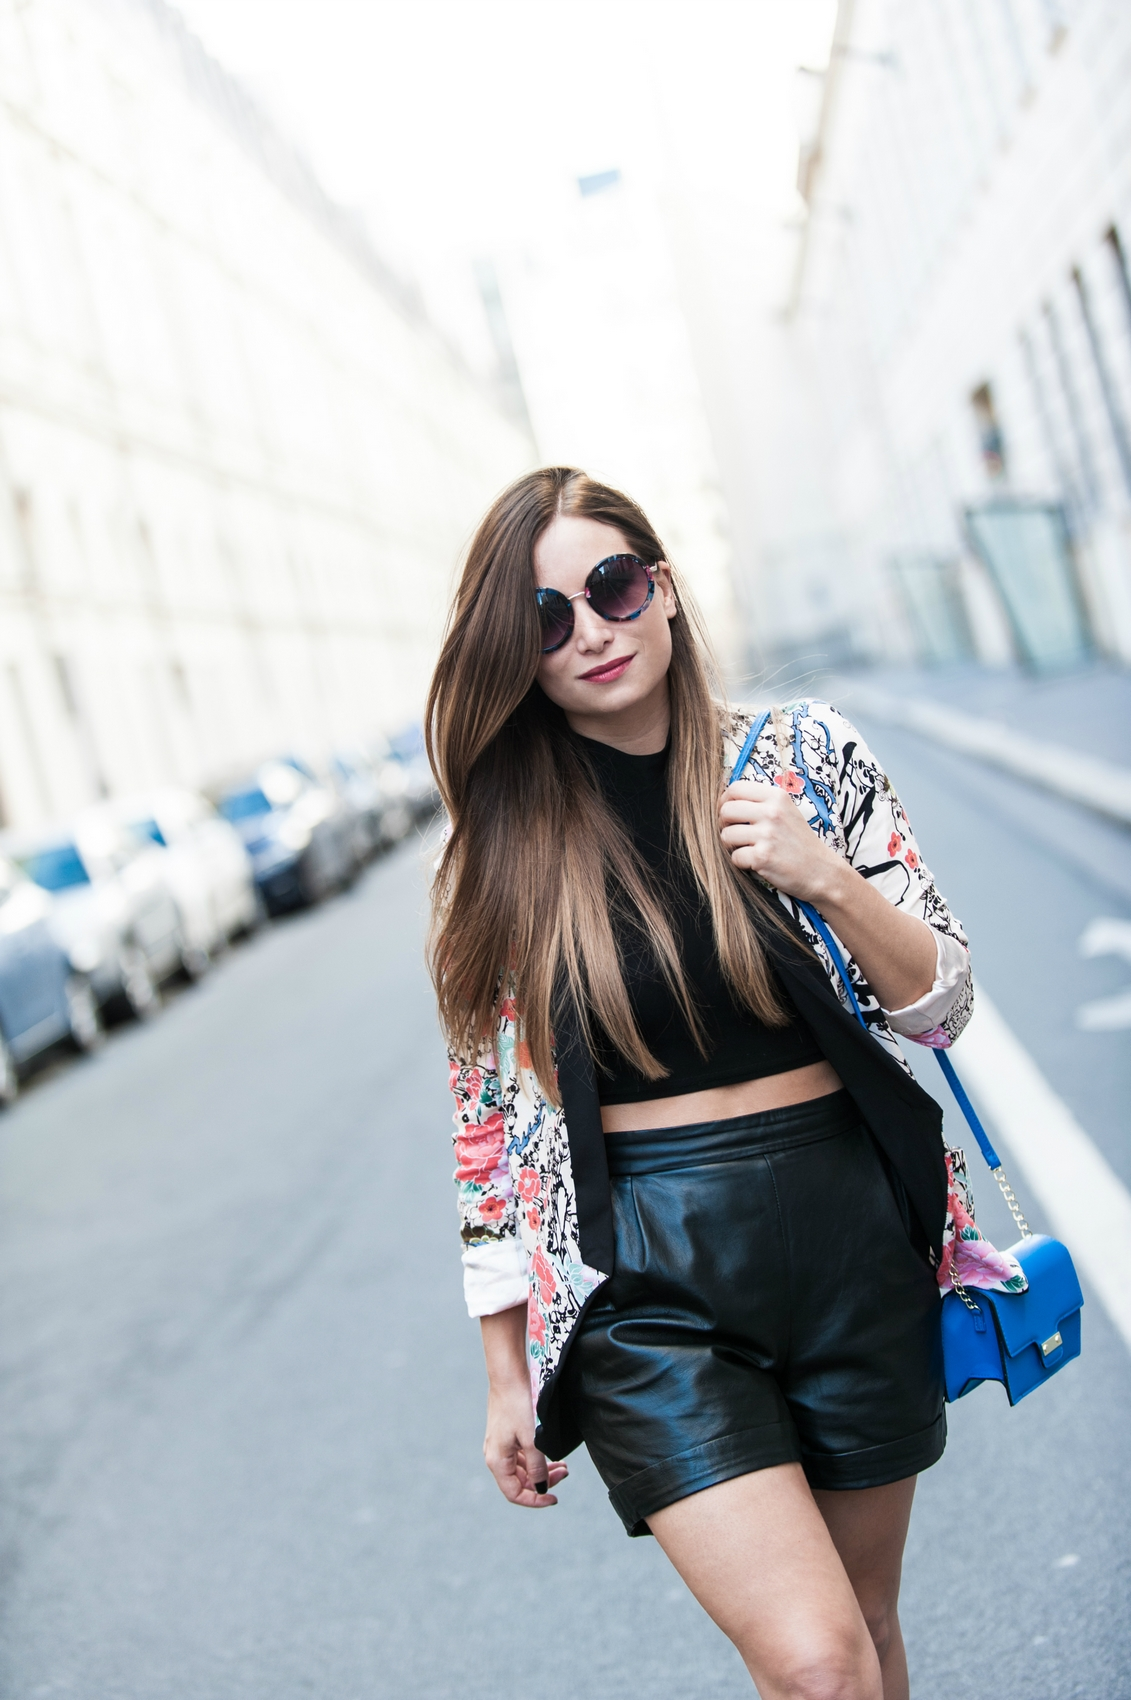 ootd sport chic outfit fashion blog paris